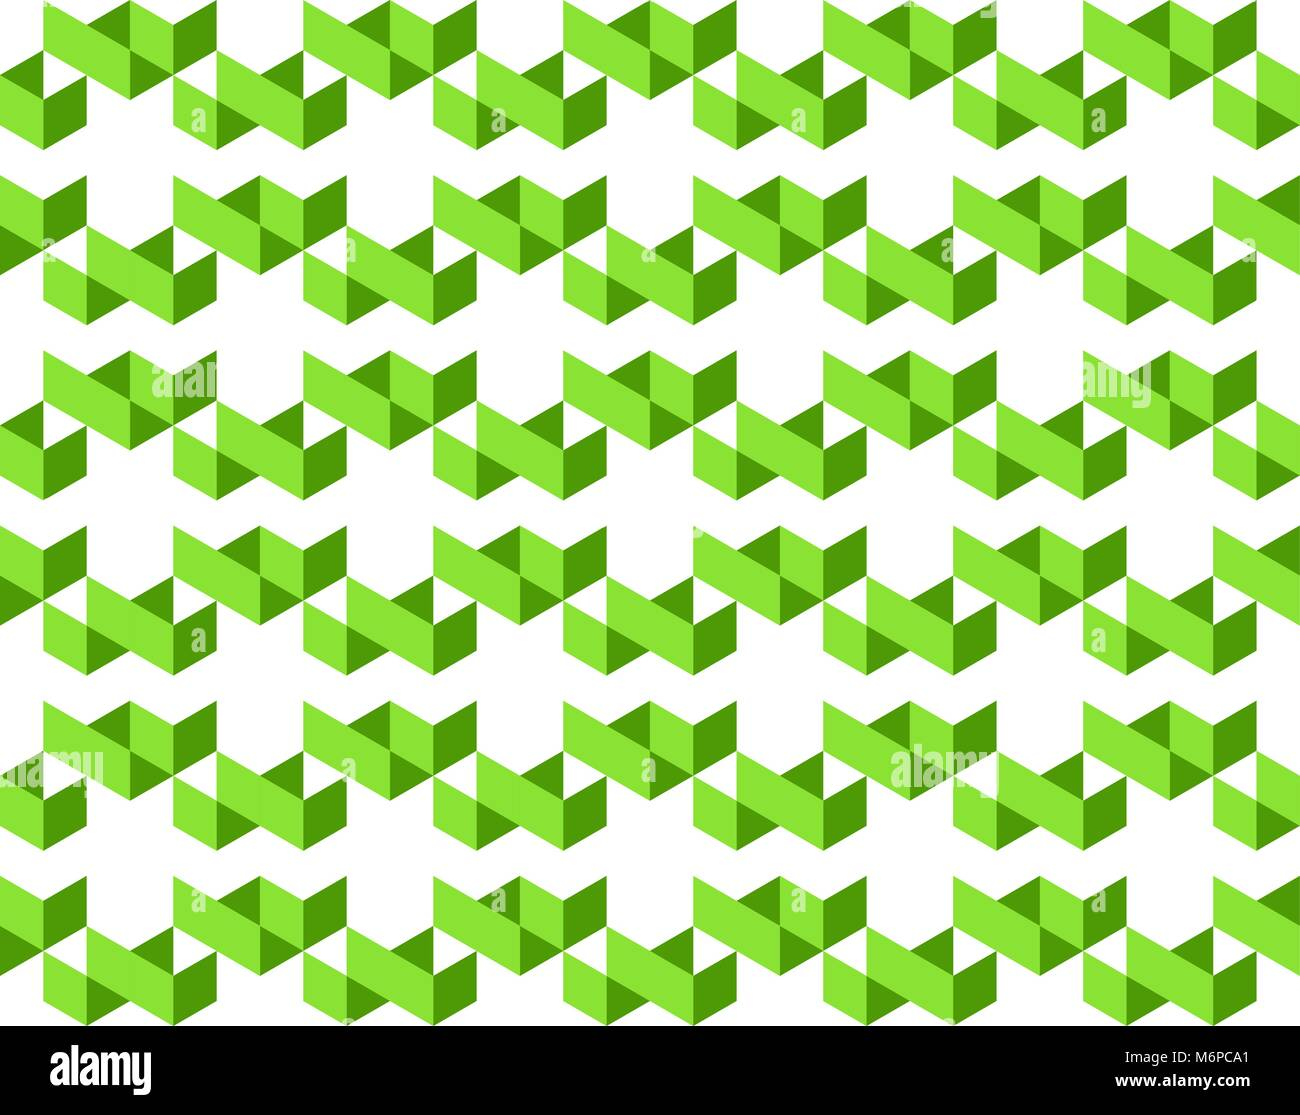 Abstract geometric pattern of 2-shades of green colors on white background - Vector illustration, EPS10. - Stock Image